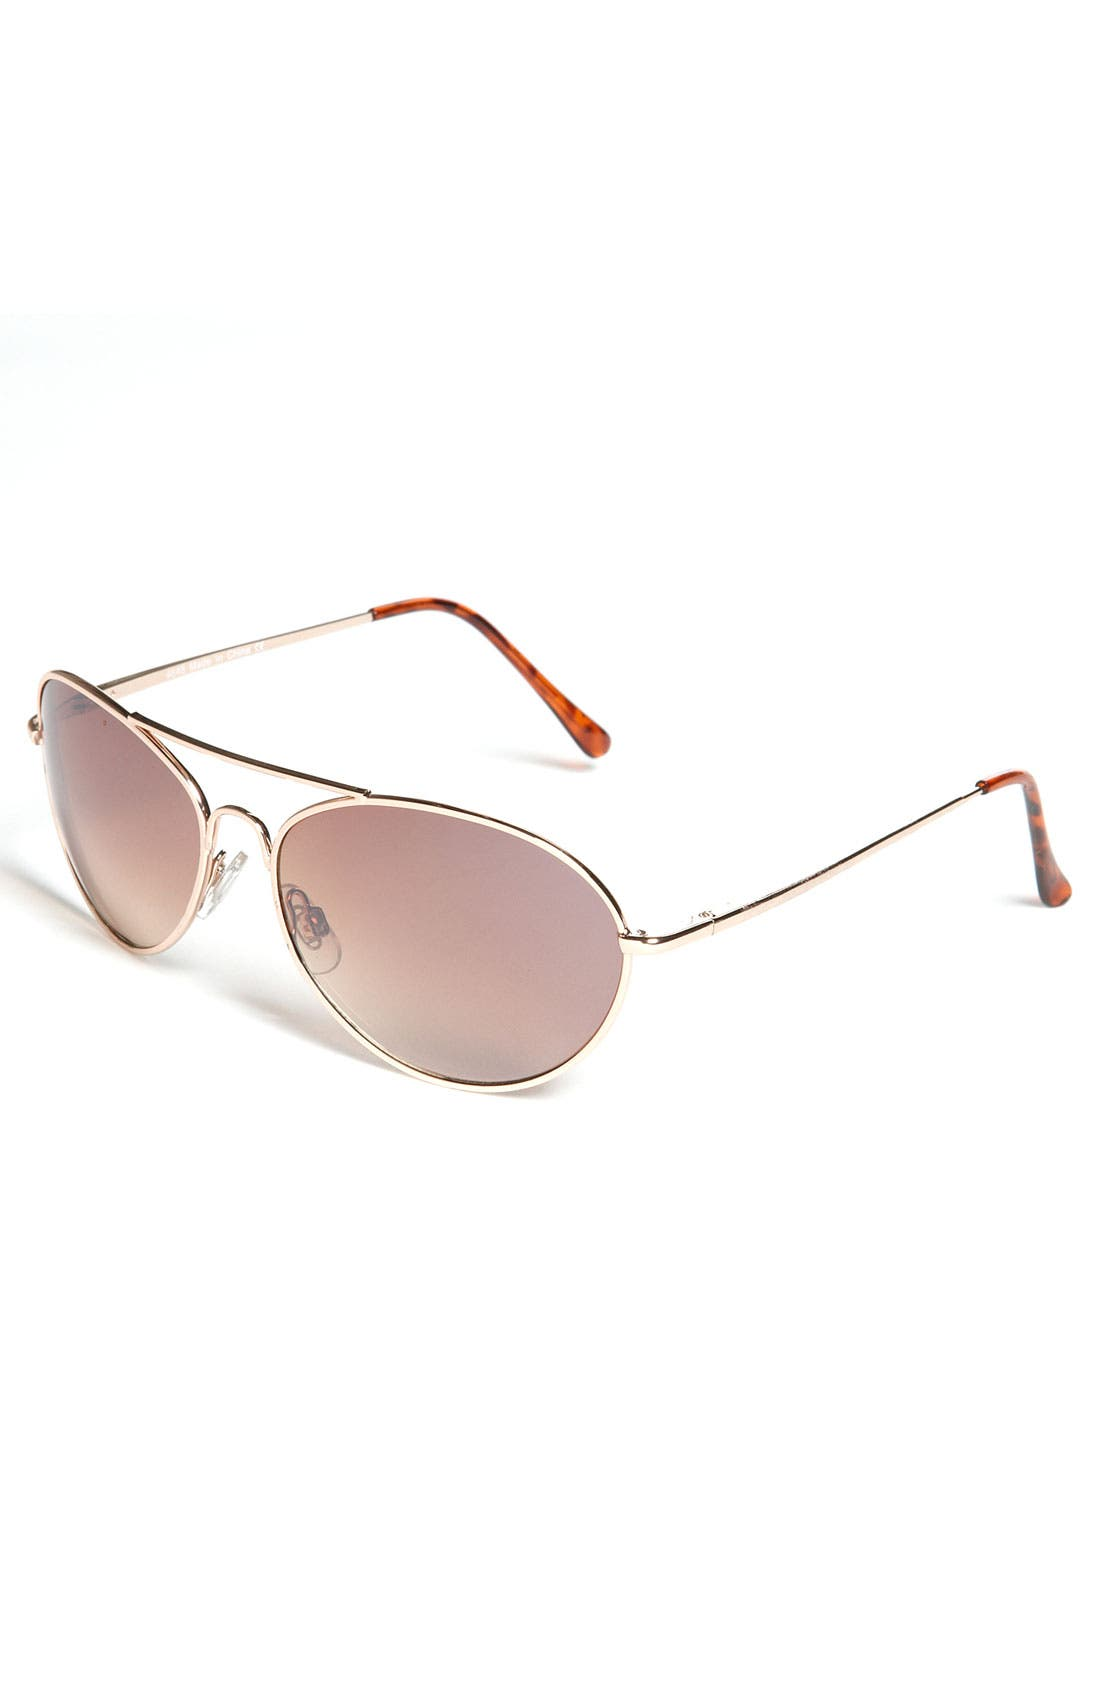 Alternate Image 1 Selected - KW Aviator Sunglasses (Big Boys)